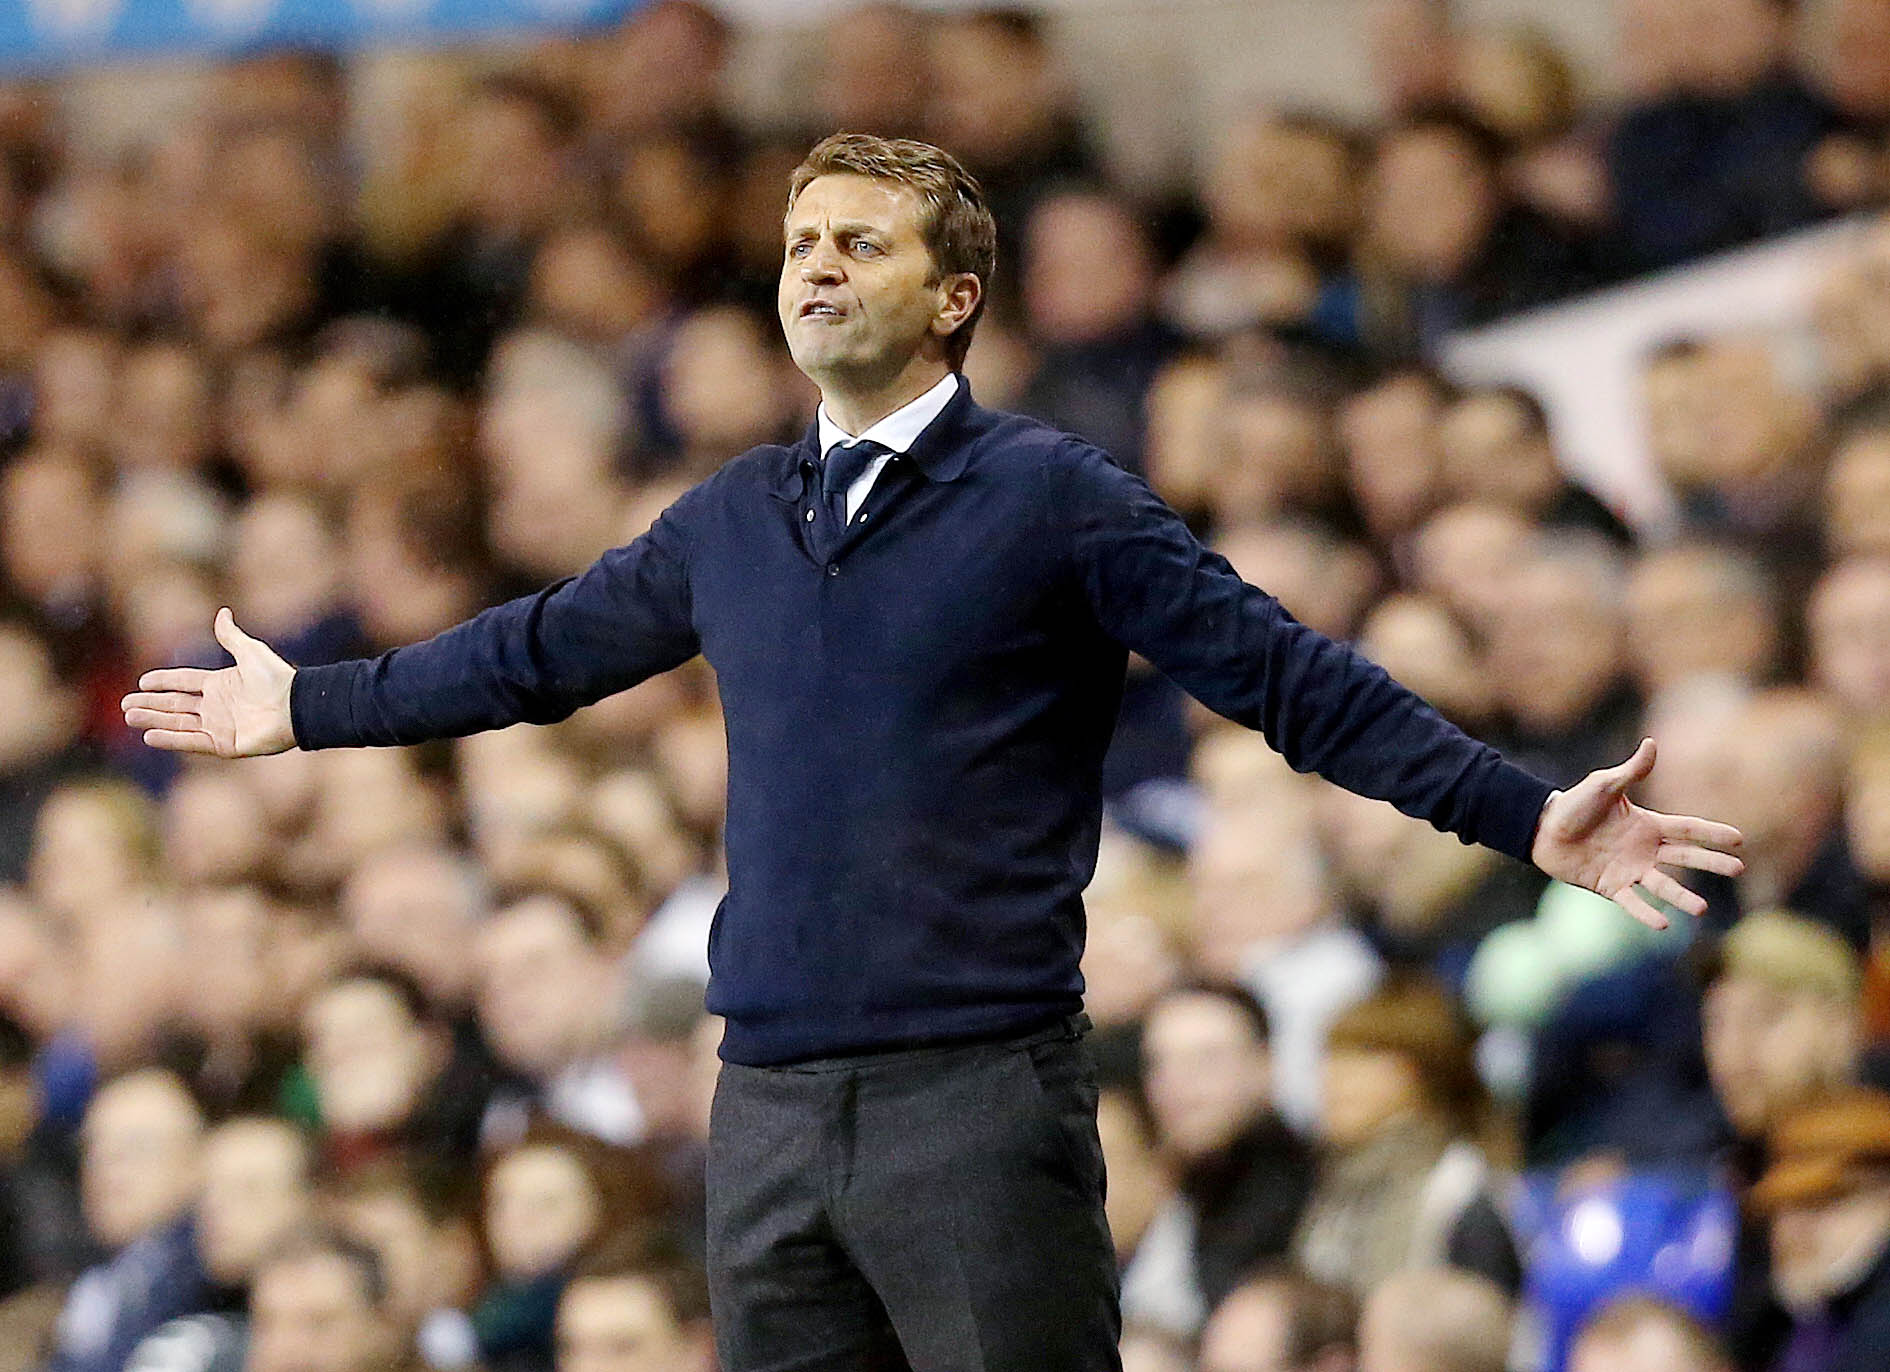 Sherwood's future as the club's head coach has been under increased scrutiny after rumours he will be replaced this summer